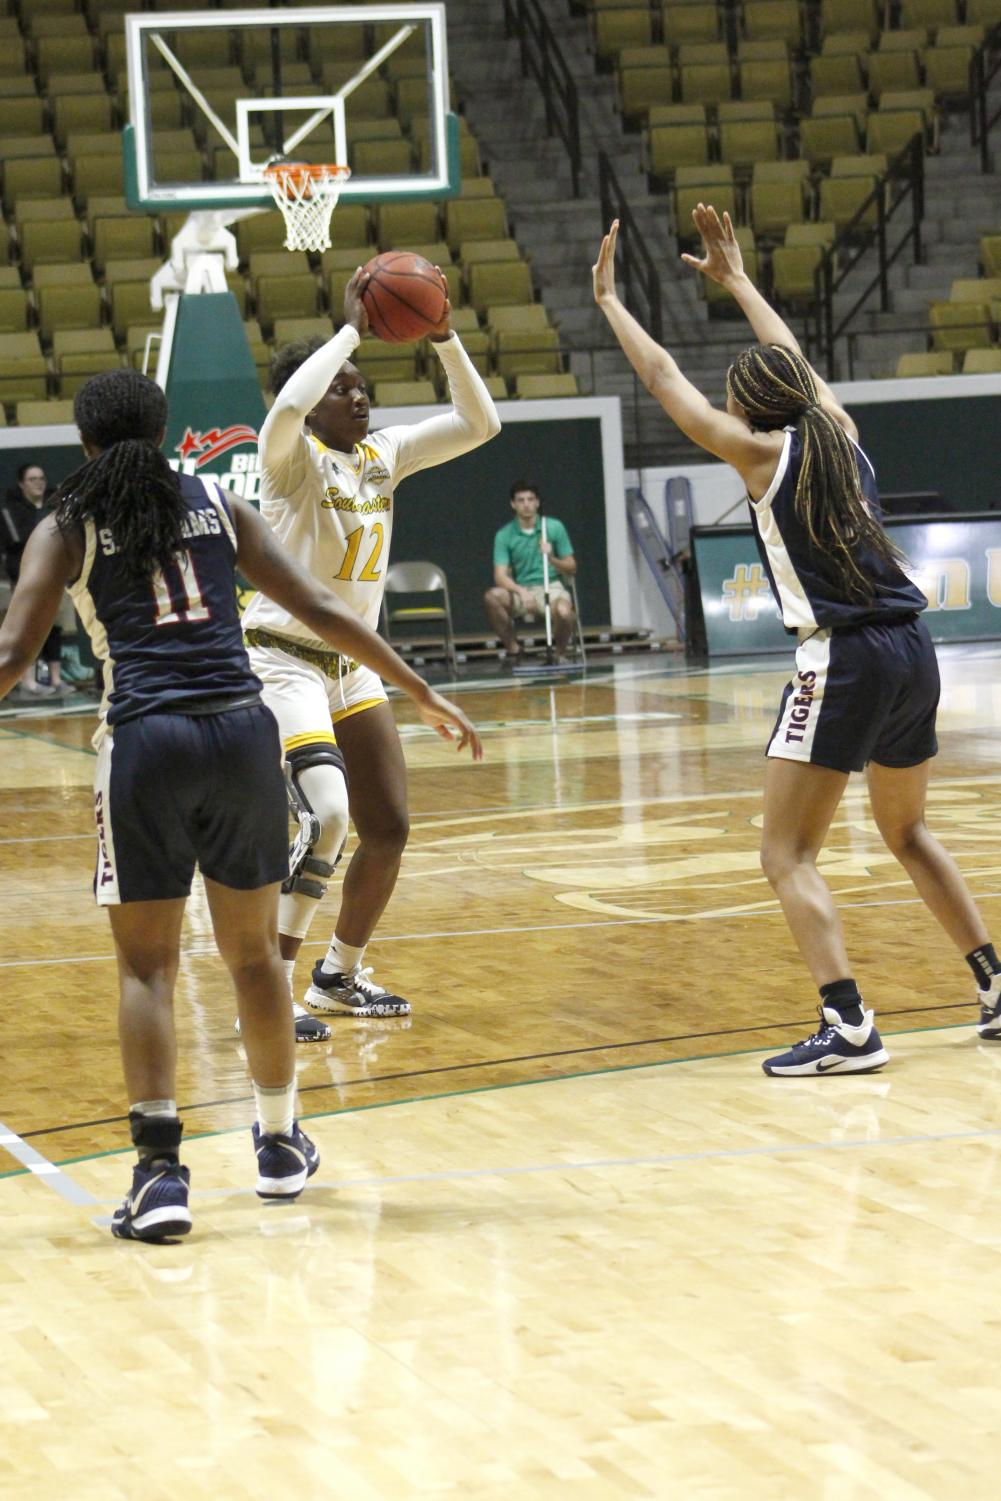 Senior forward Jyar Francis passes the ball between two Jackson State University defenders. The Lady Lions extended their win streak to three games with the win over Jackson State. The Lady Lions next game will be on Friday Dec. 13 in Ruston against Louisiana Tech University. The Lady Lions will look to make their record 4-4.